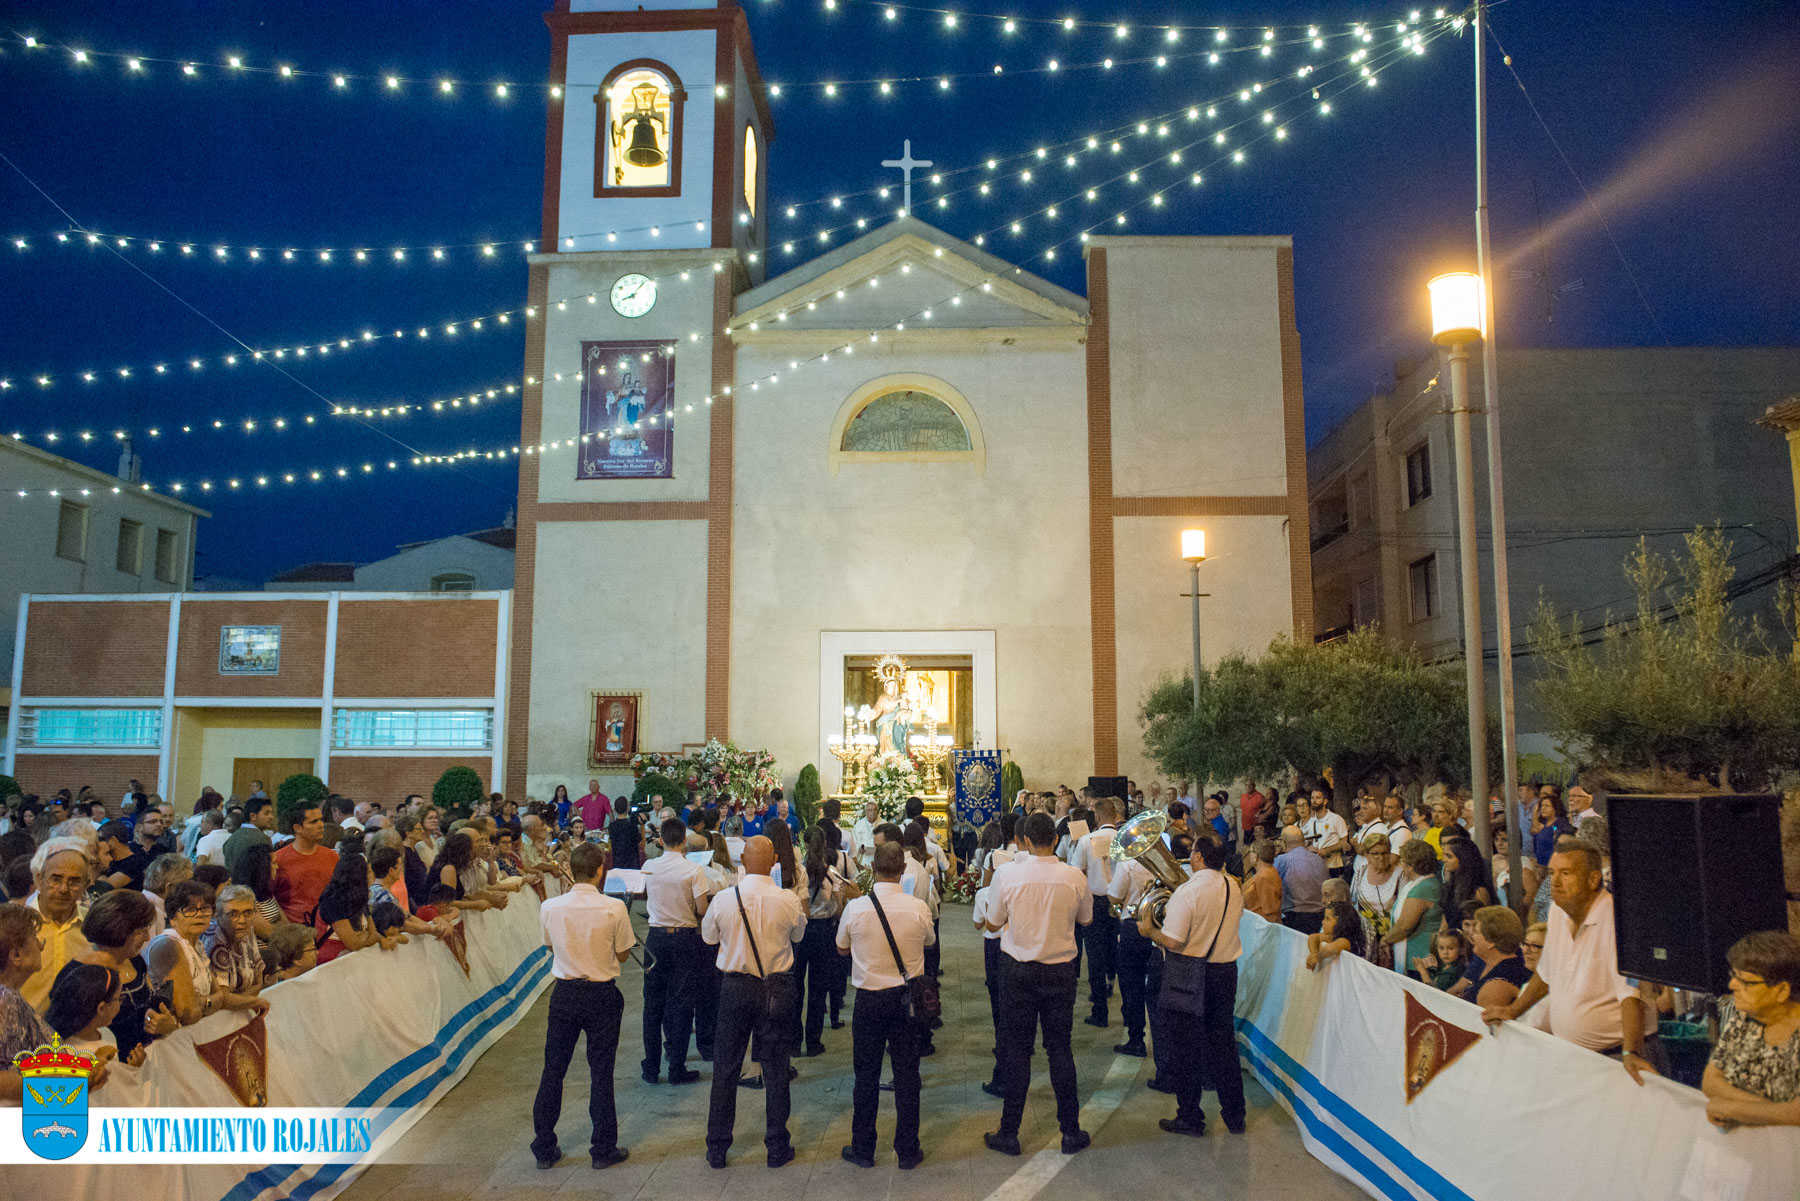 FESTIVITIES IN HONOUR OF VIRGEN DEL ROSARIO